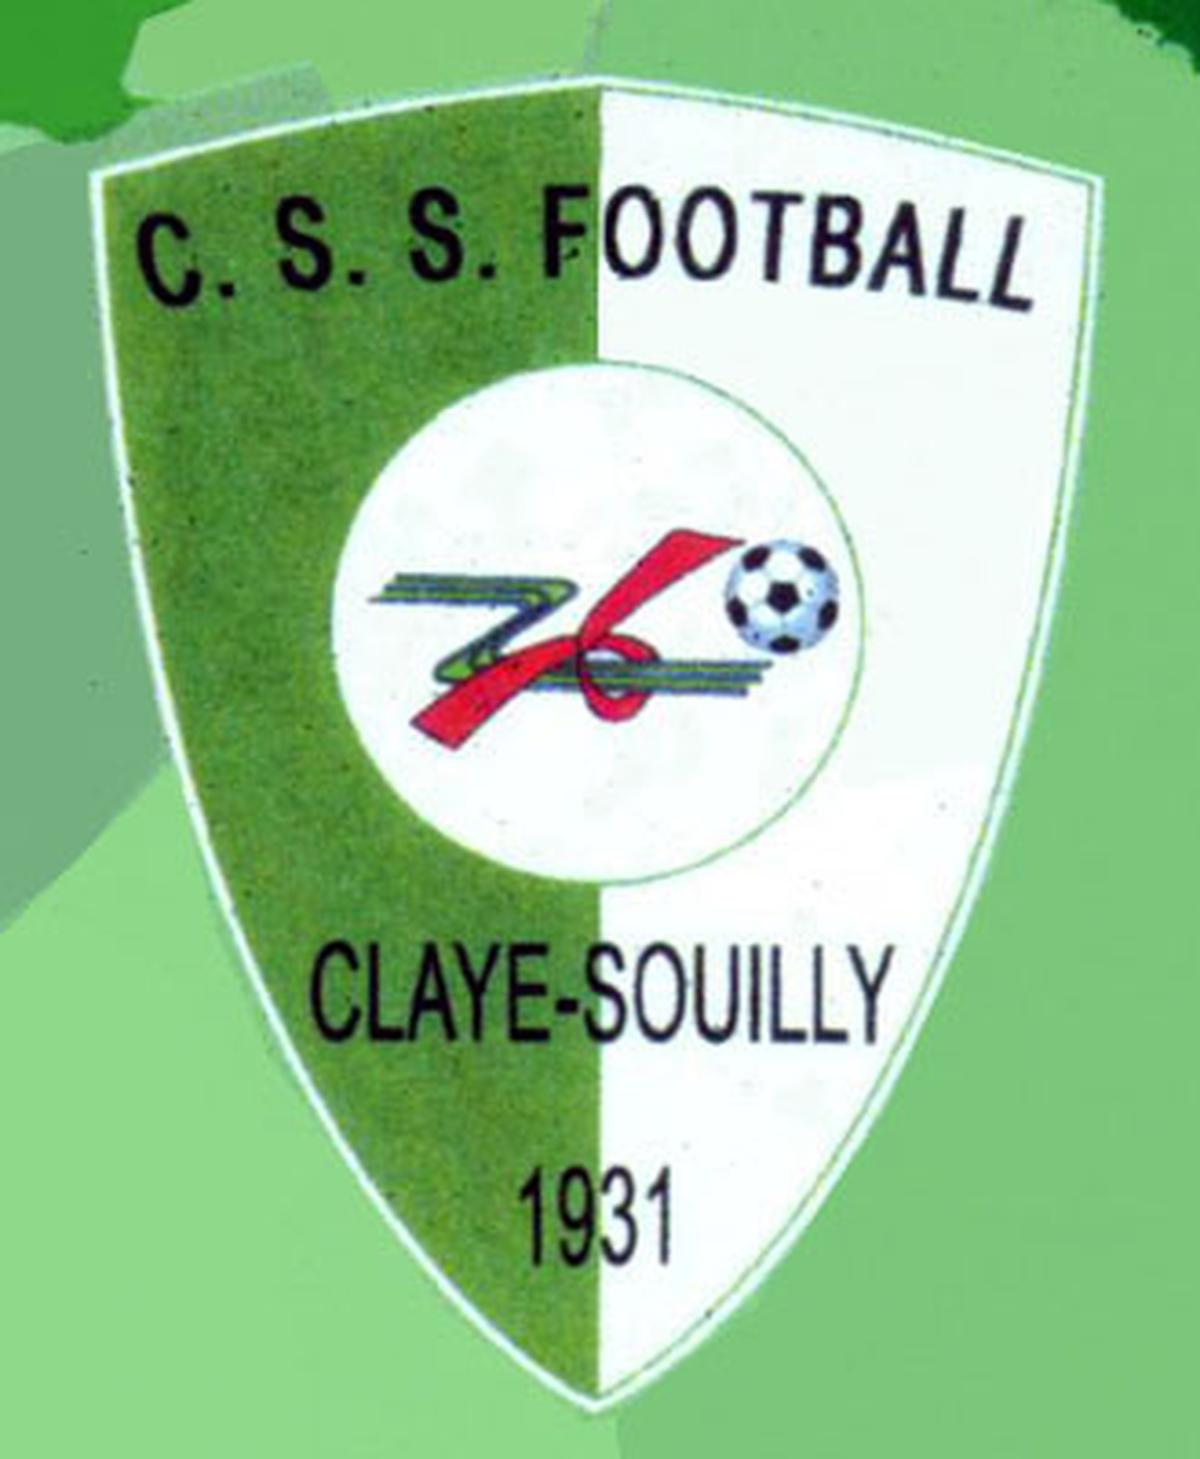 CLAYE SOUILLY SPORTS